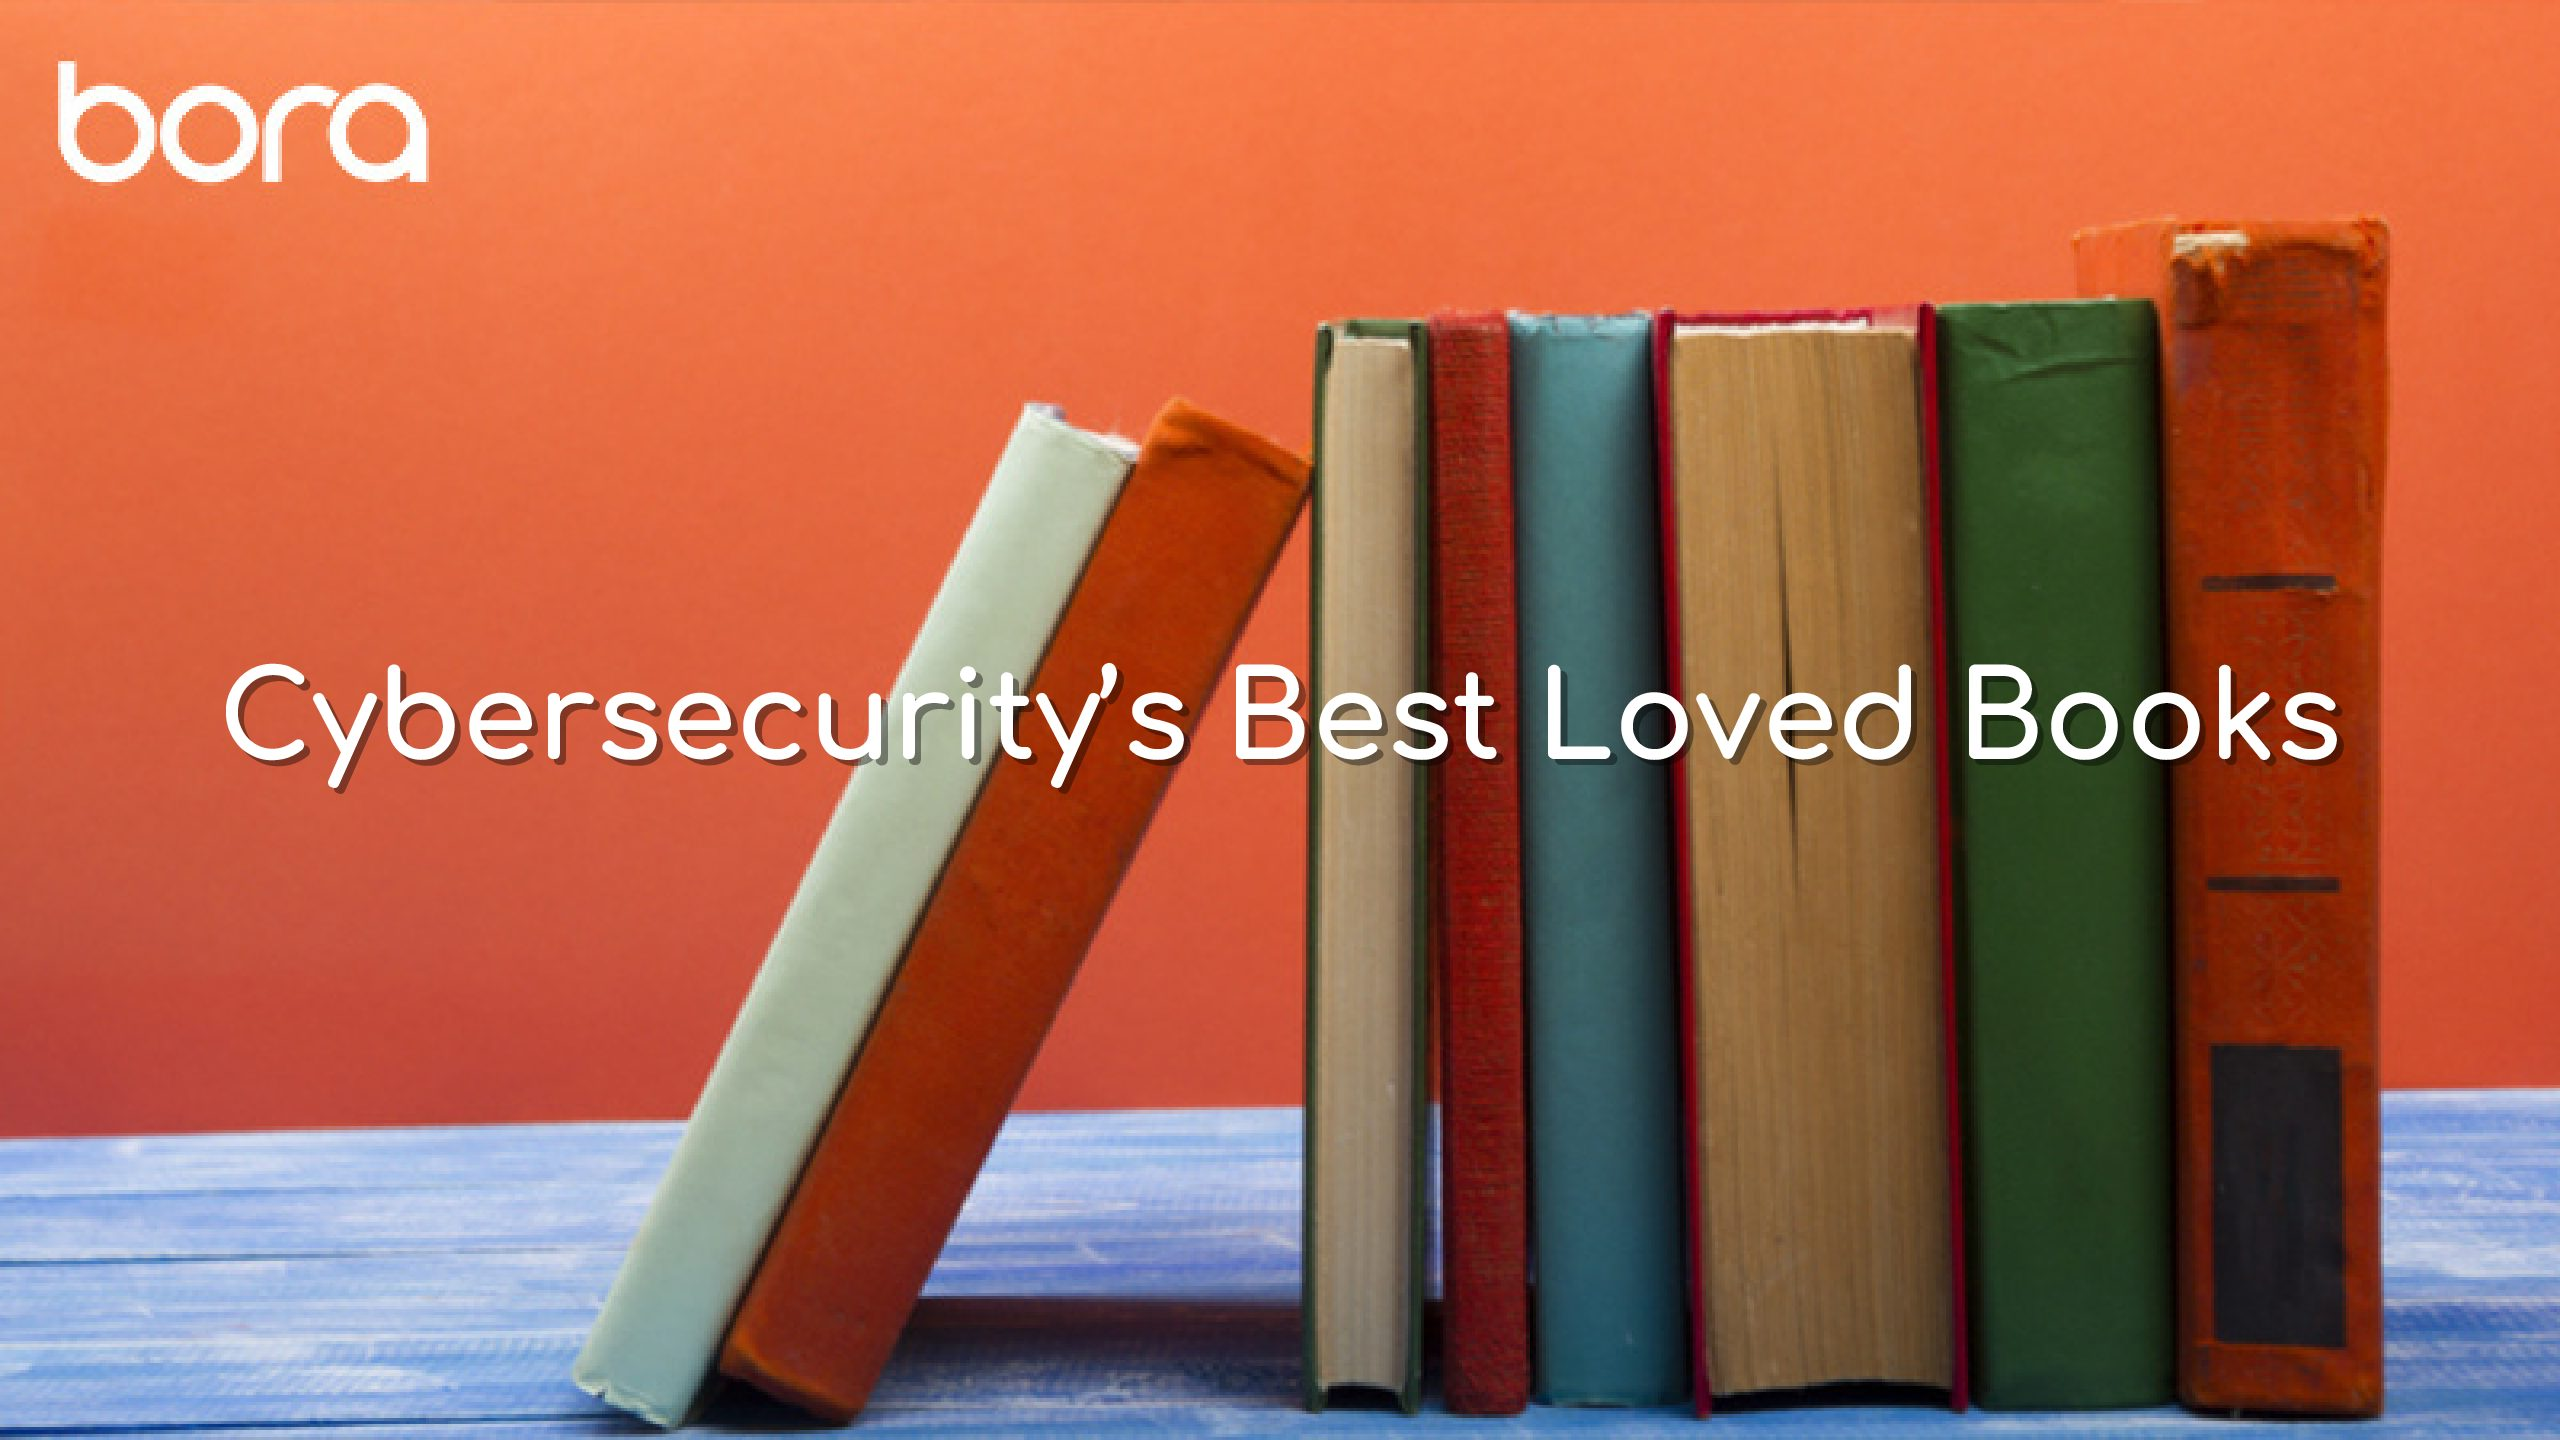 Cybersecurity's Best Loved Books